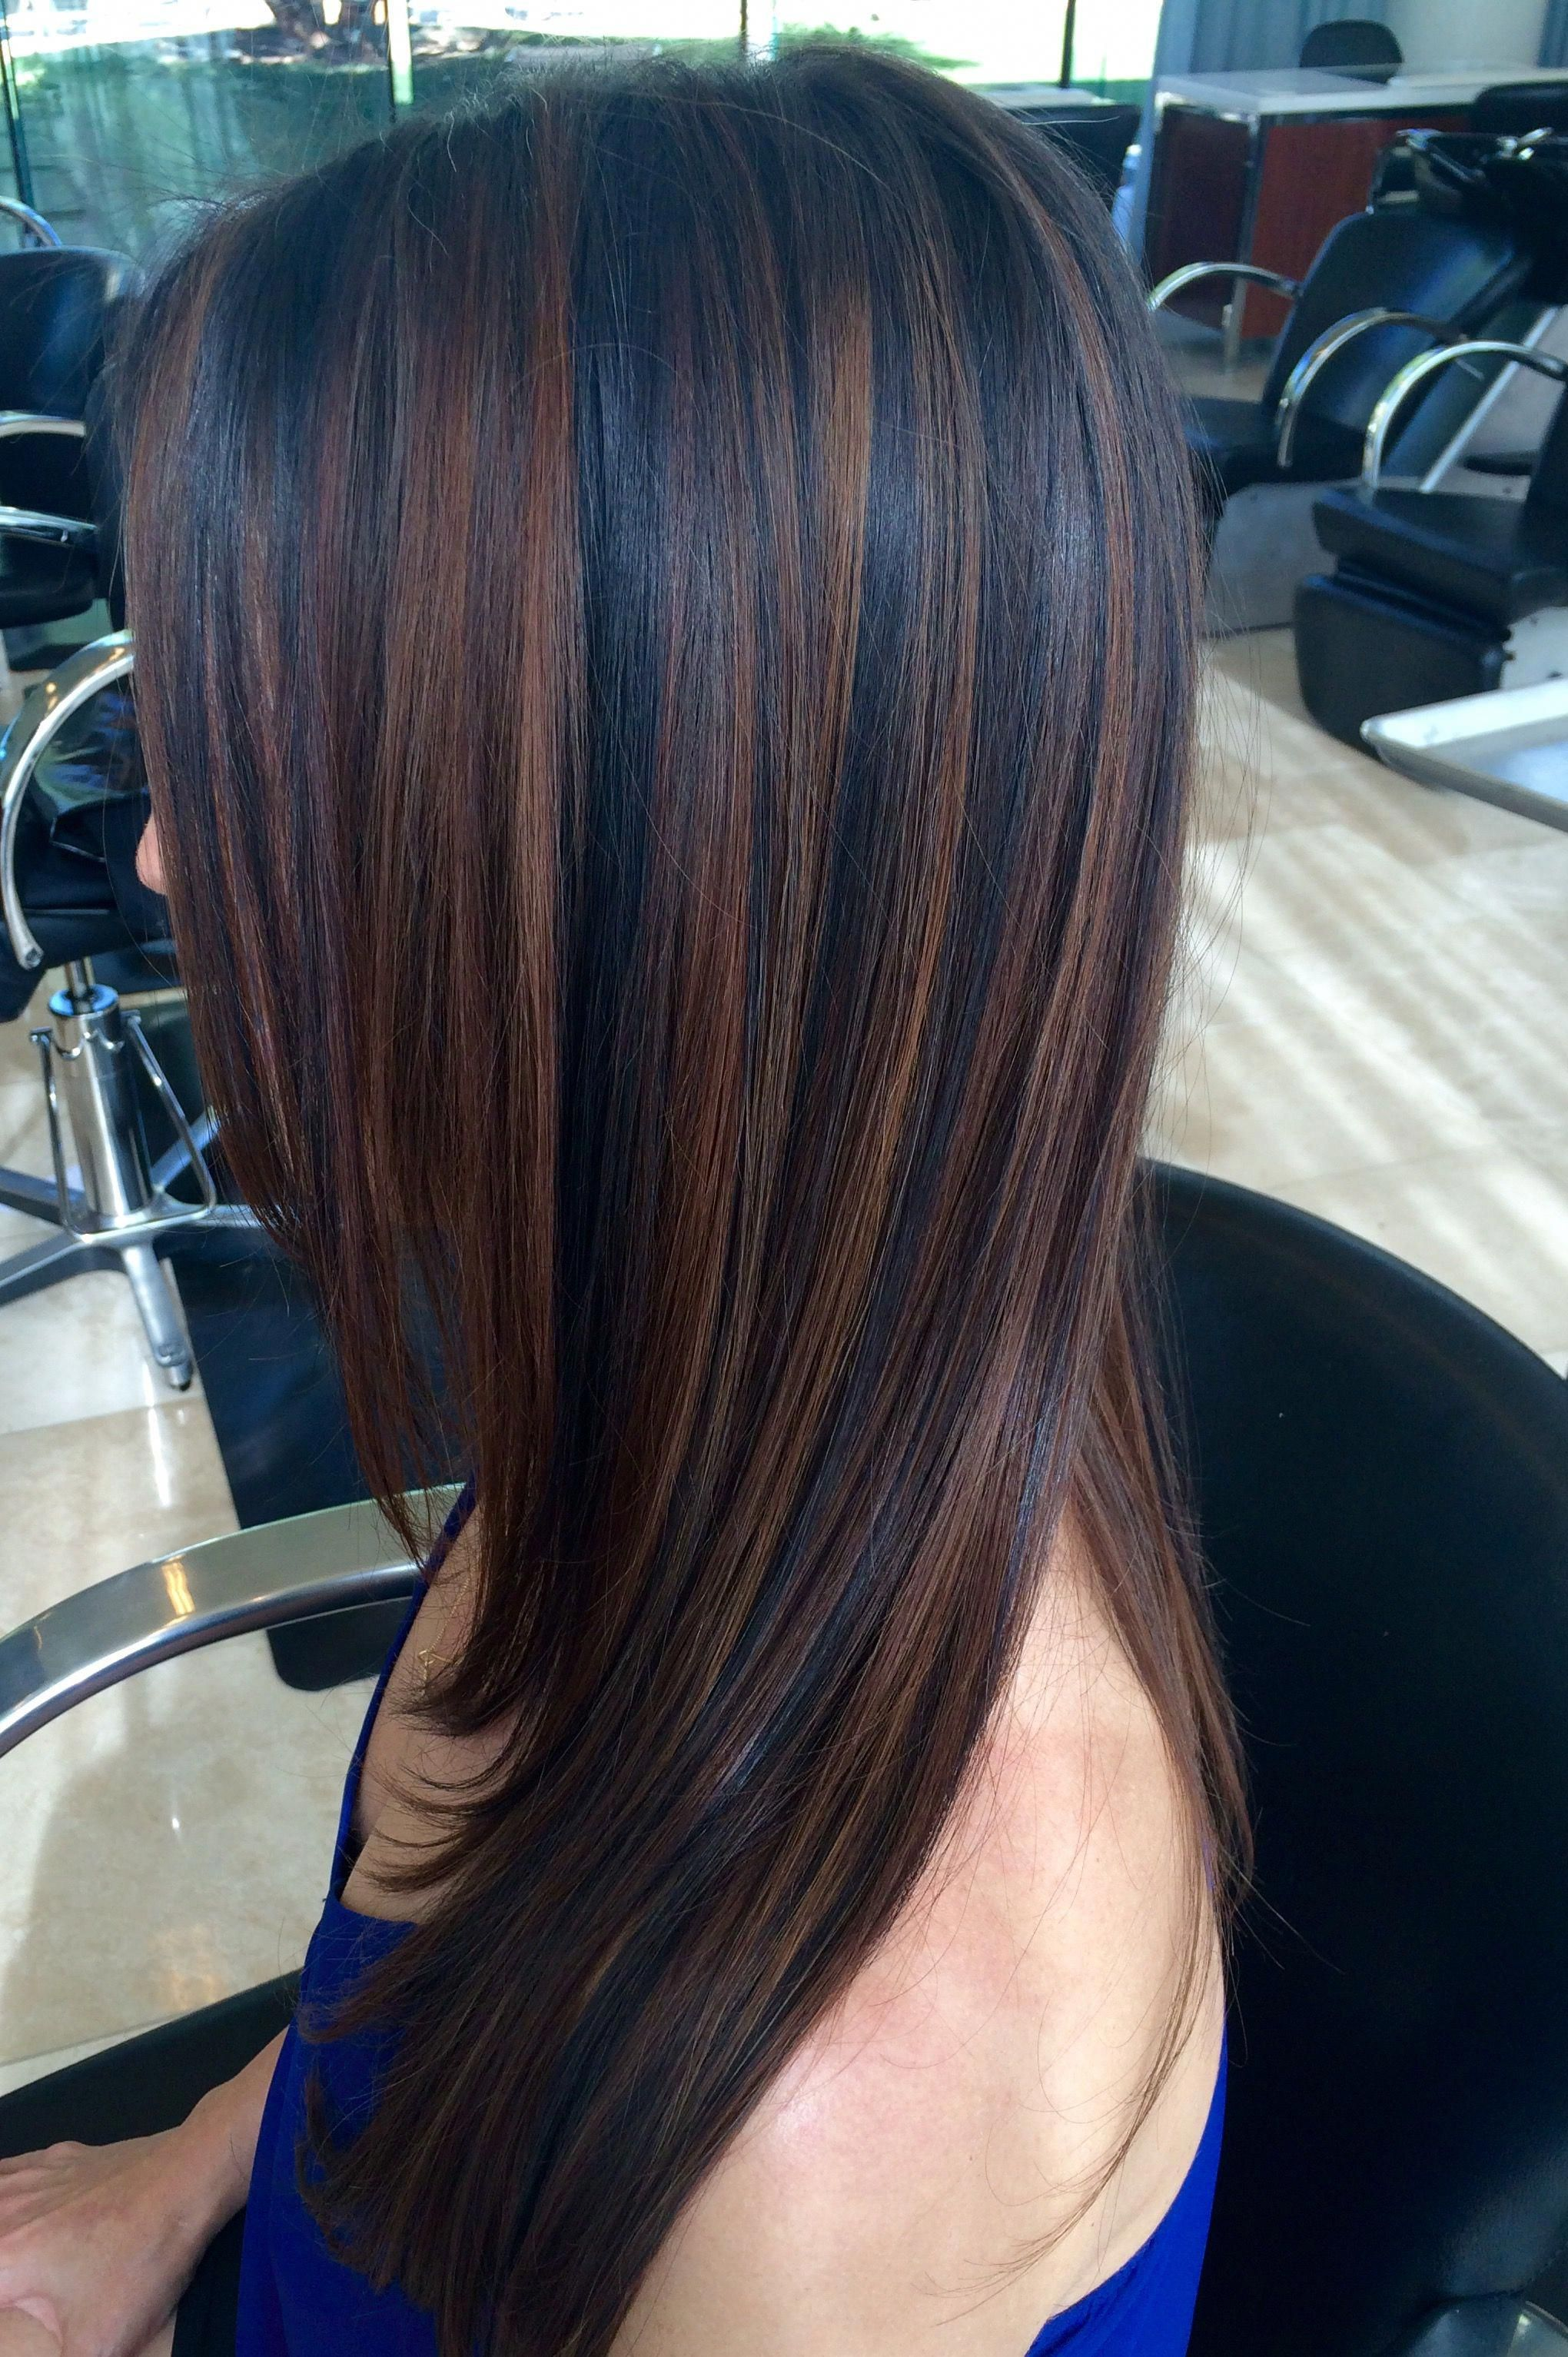 Cabello Haircolorideasforbrunettes Hair Color For Black Hair Hair Styles Fall Hair Color For Brunettes